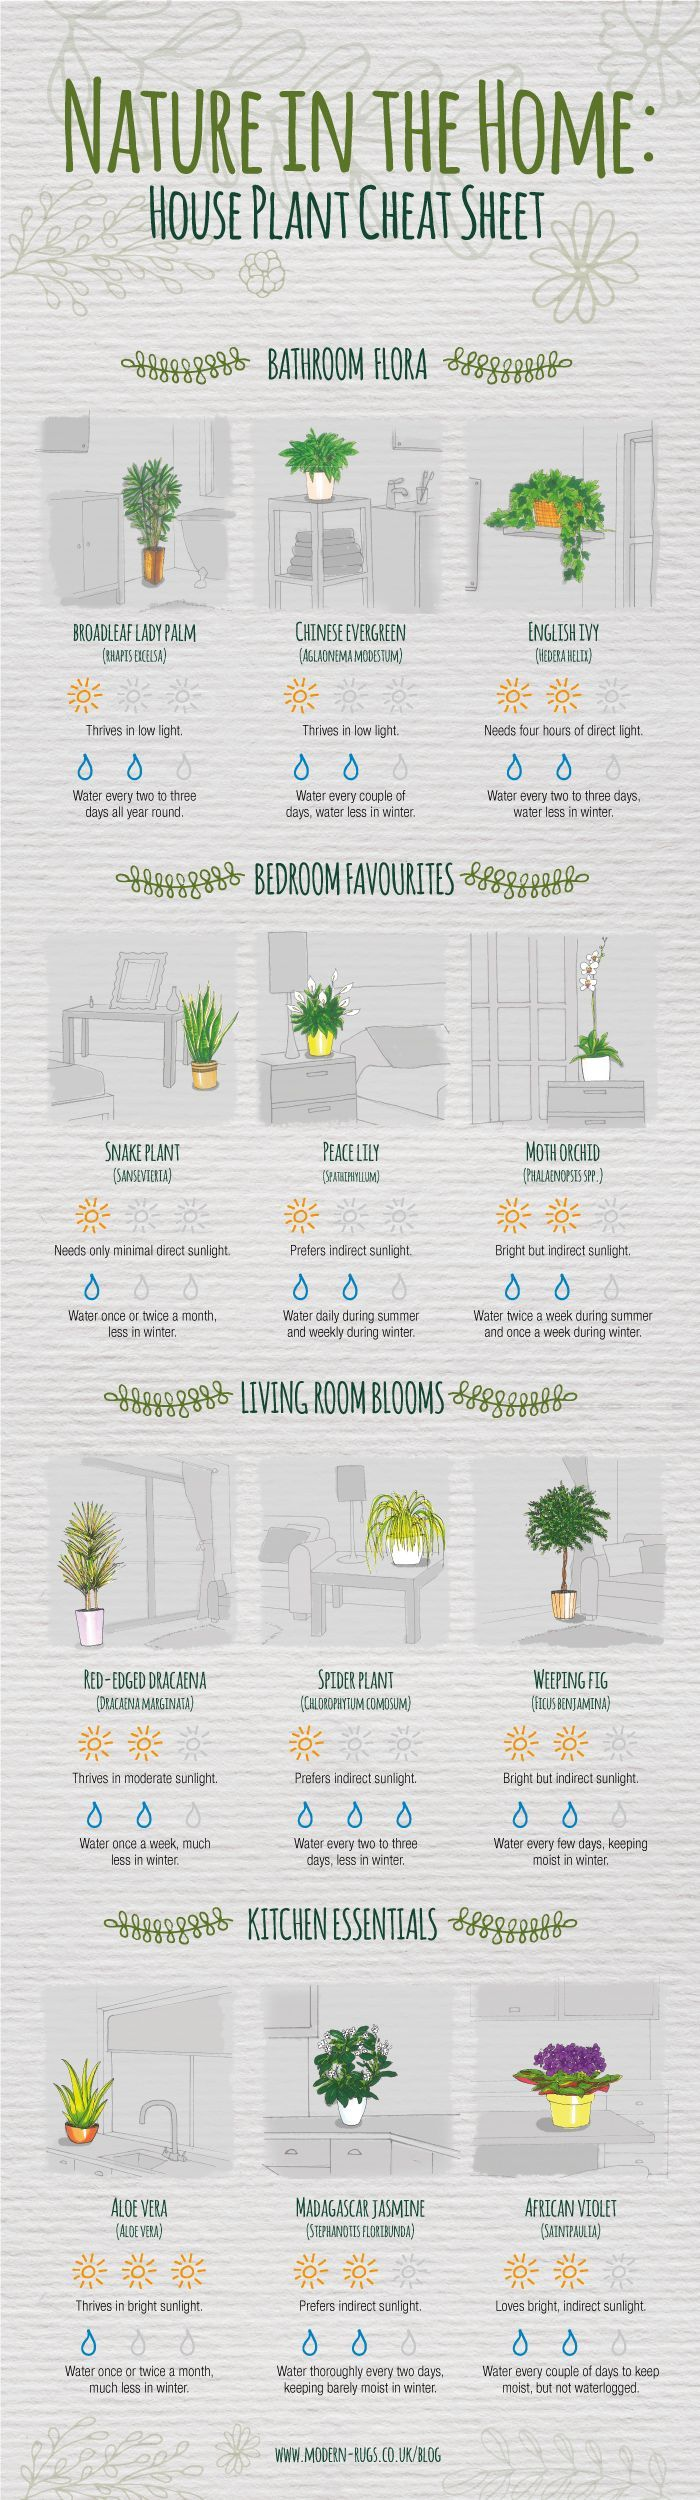 Beginners Guide To Houseplants Ultimate Guide Video